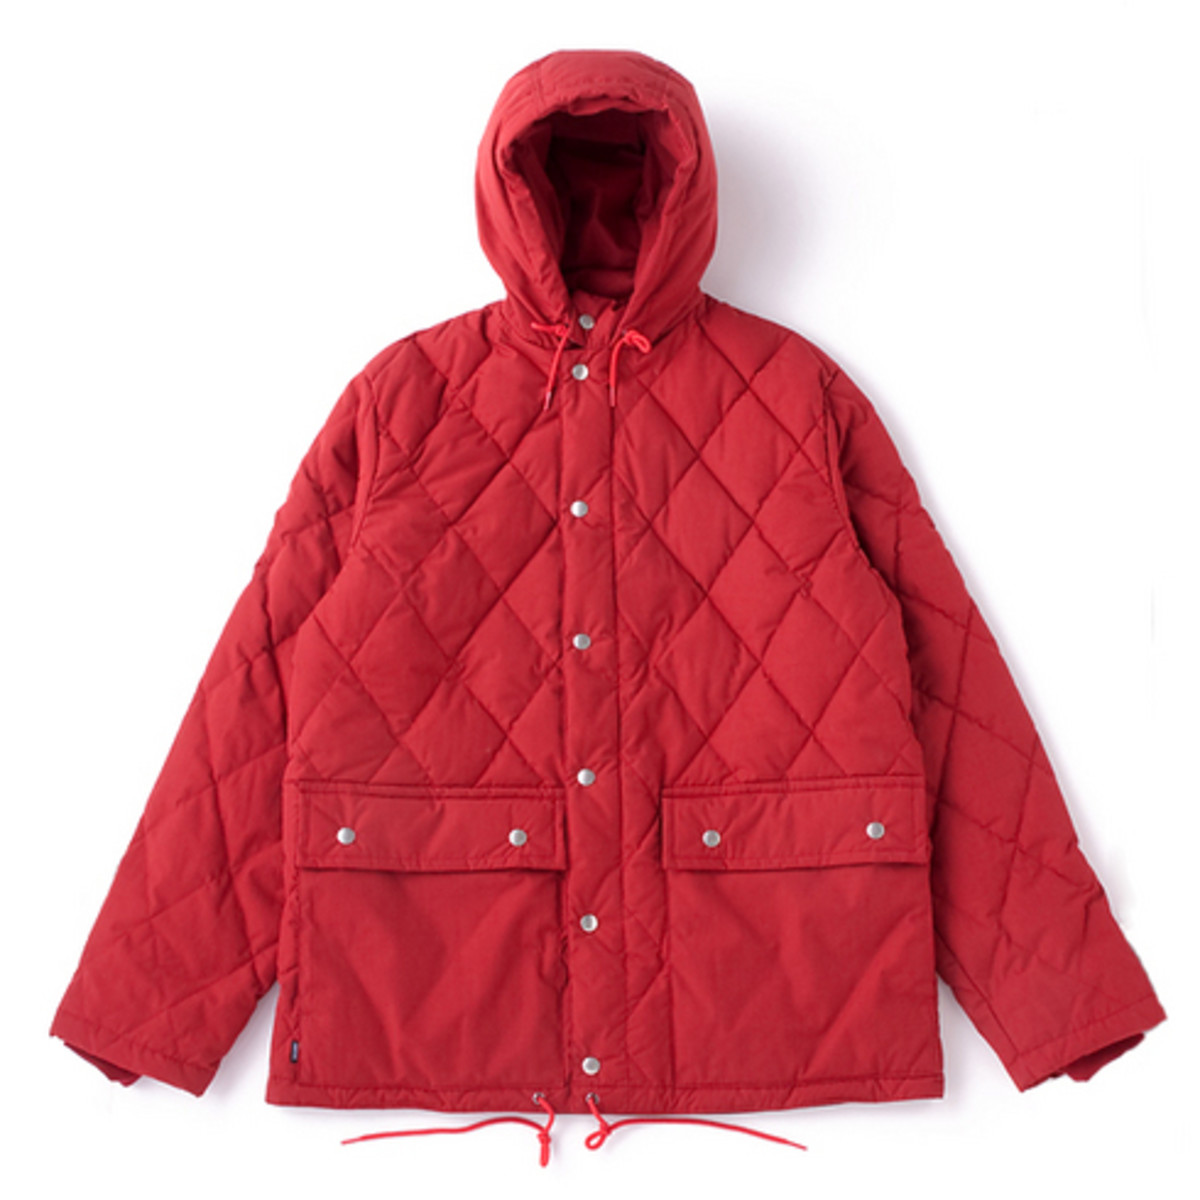 quilting-jacket-red